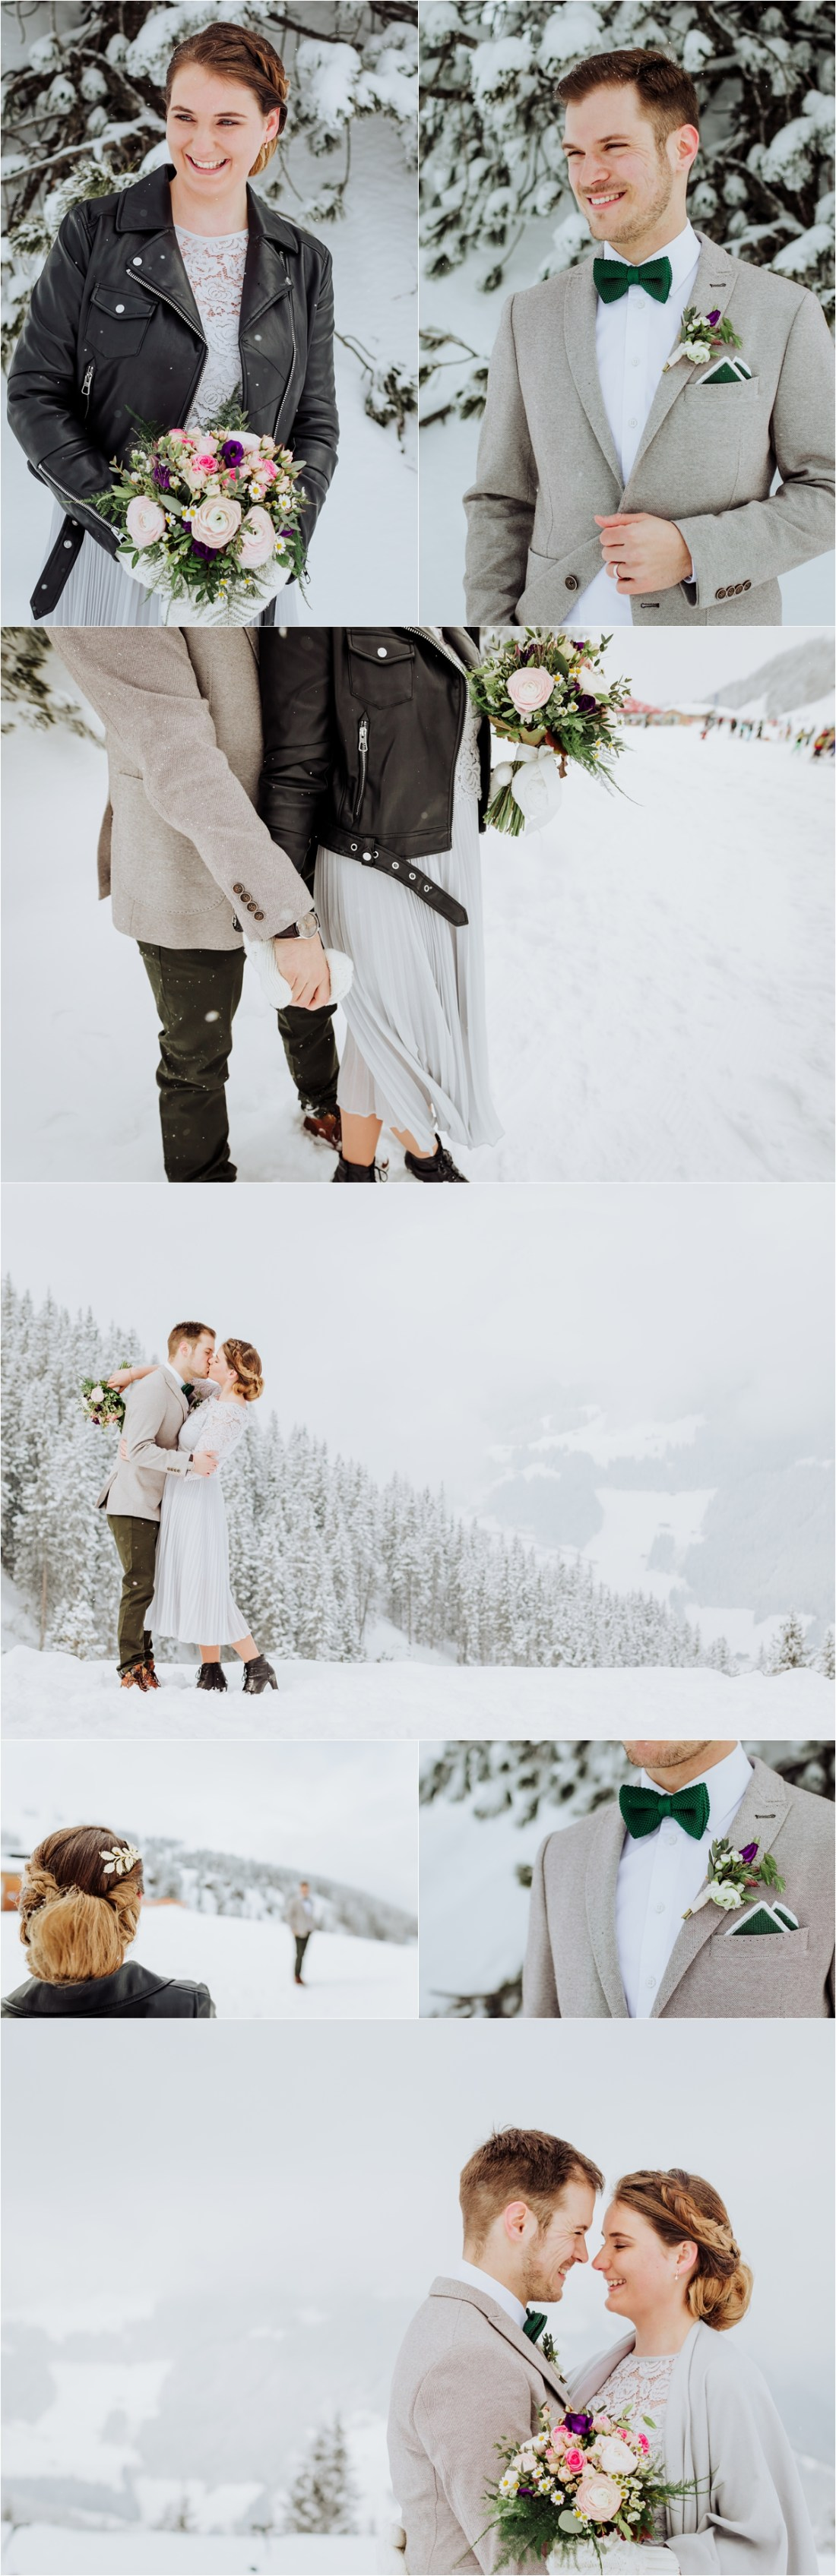 An intimate winter elopement in the Austria Alps in Mayrhofen by Wild Connections Photography